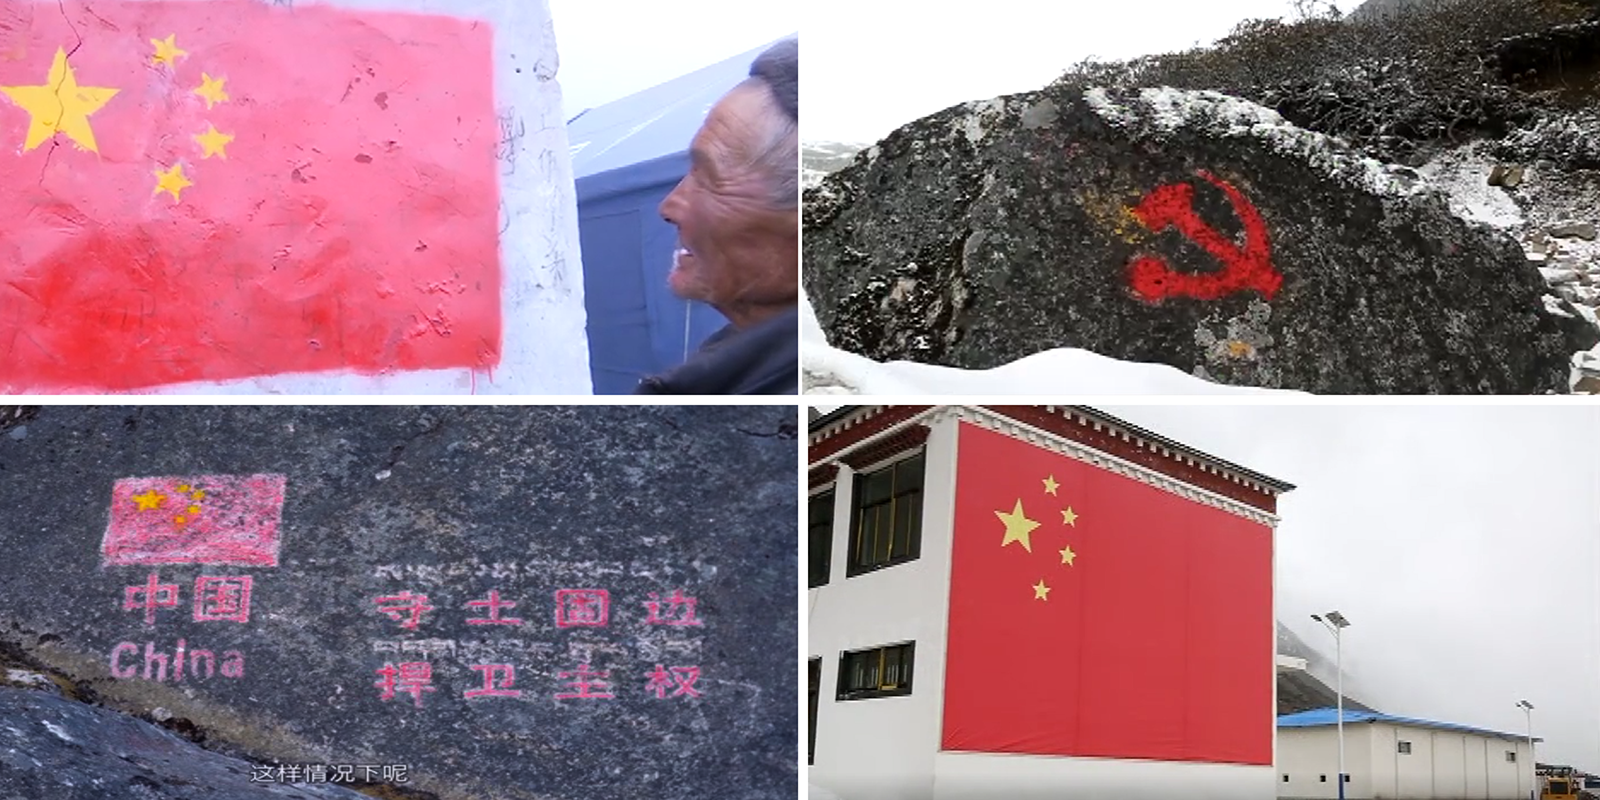 """Images from 2020 and this year show flags, symbols, and slogans on walls, rocks, and mountainsides in the Beyul painted by villagers and Joint Defense Team members to mark the settlement area as part of China. The image at bottom left reads: """"Protect the land, consolidate the border, defend sovereignty."""" At bottom right, a giant Chinese flag on the wall of the administration building in Gyalaphug faces south toward the rest of Bhutan."""